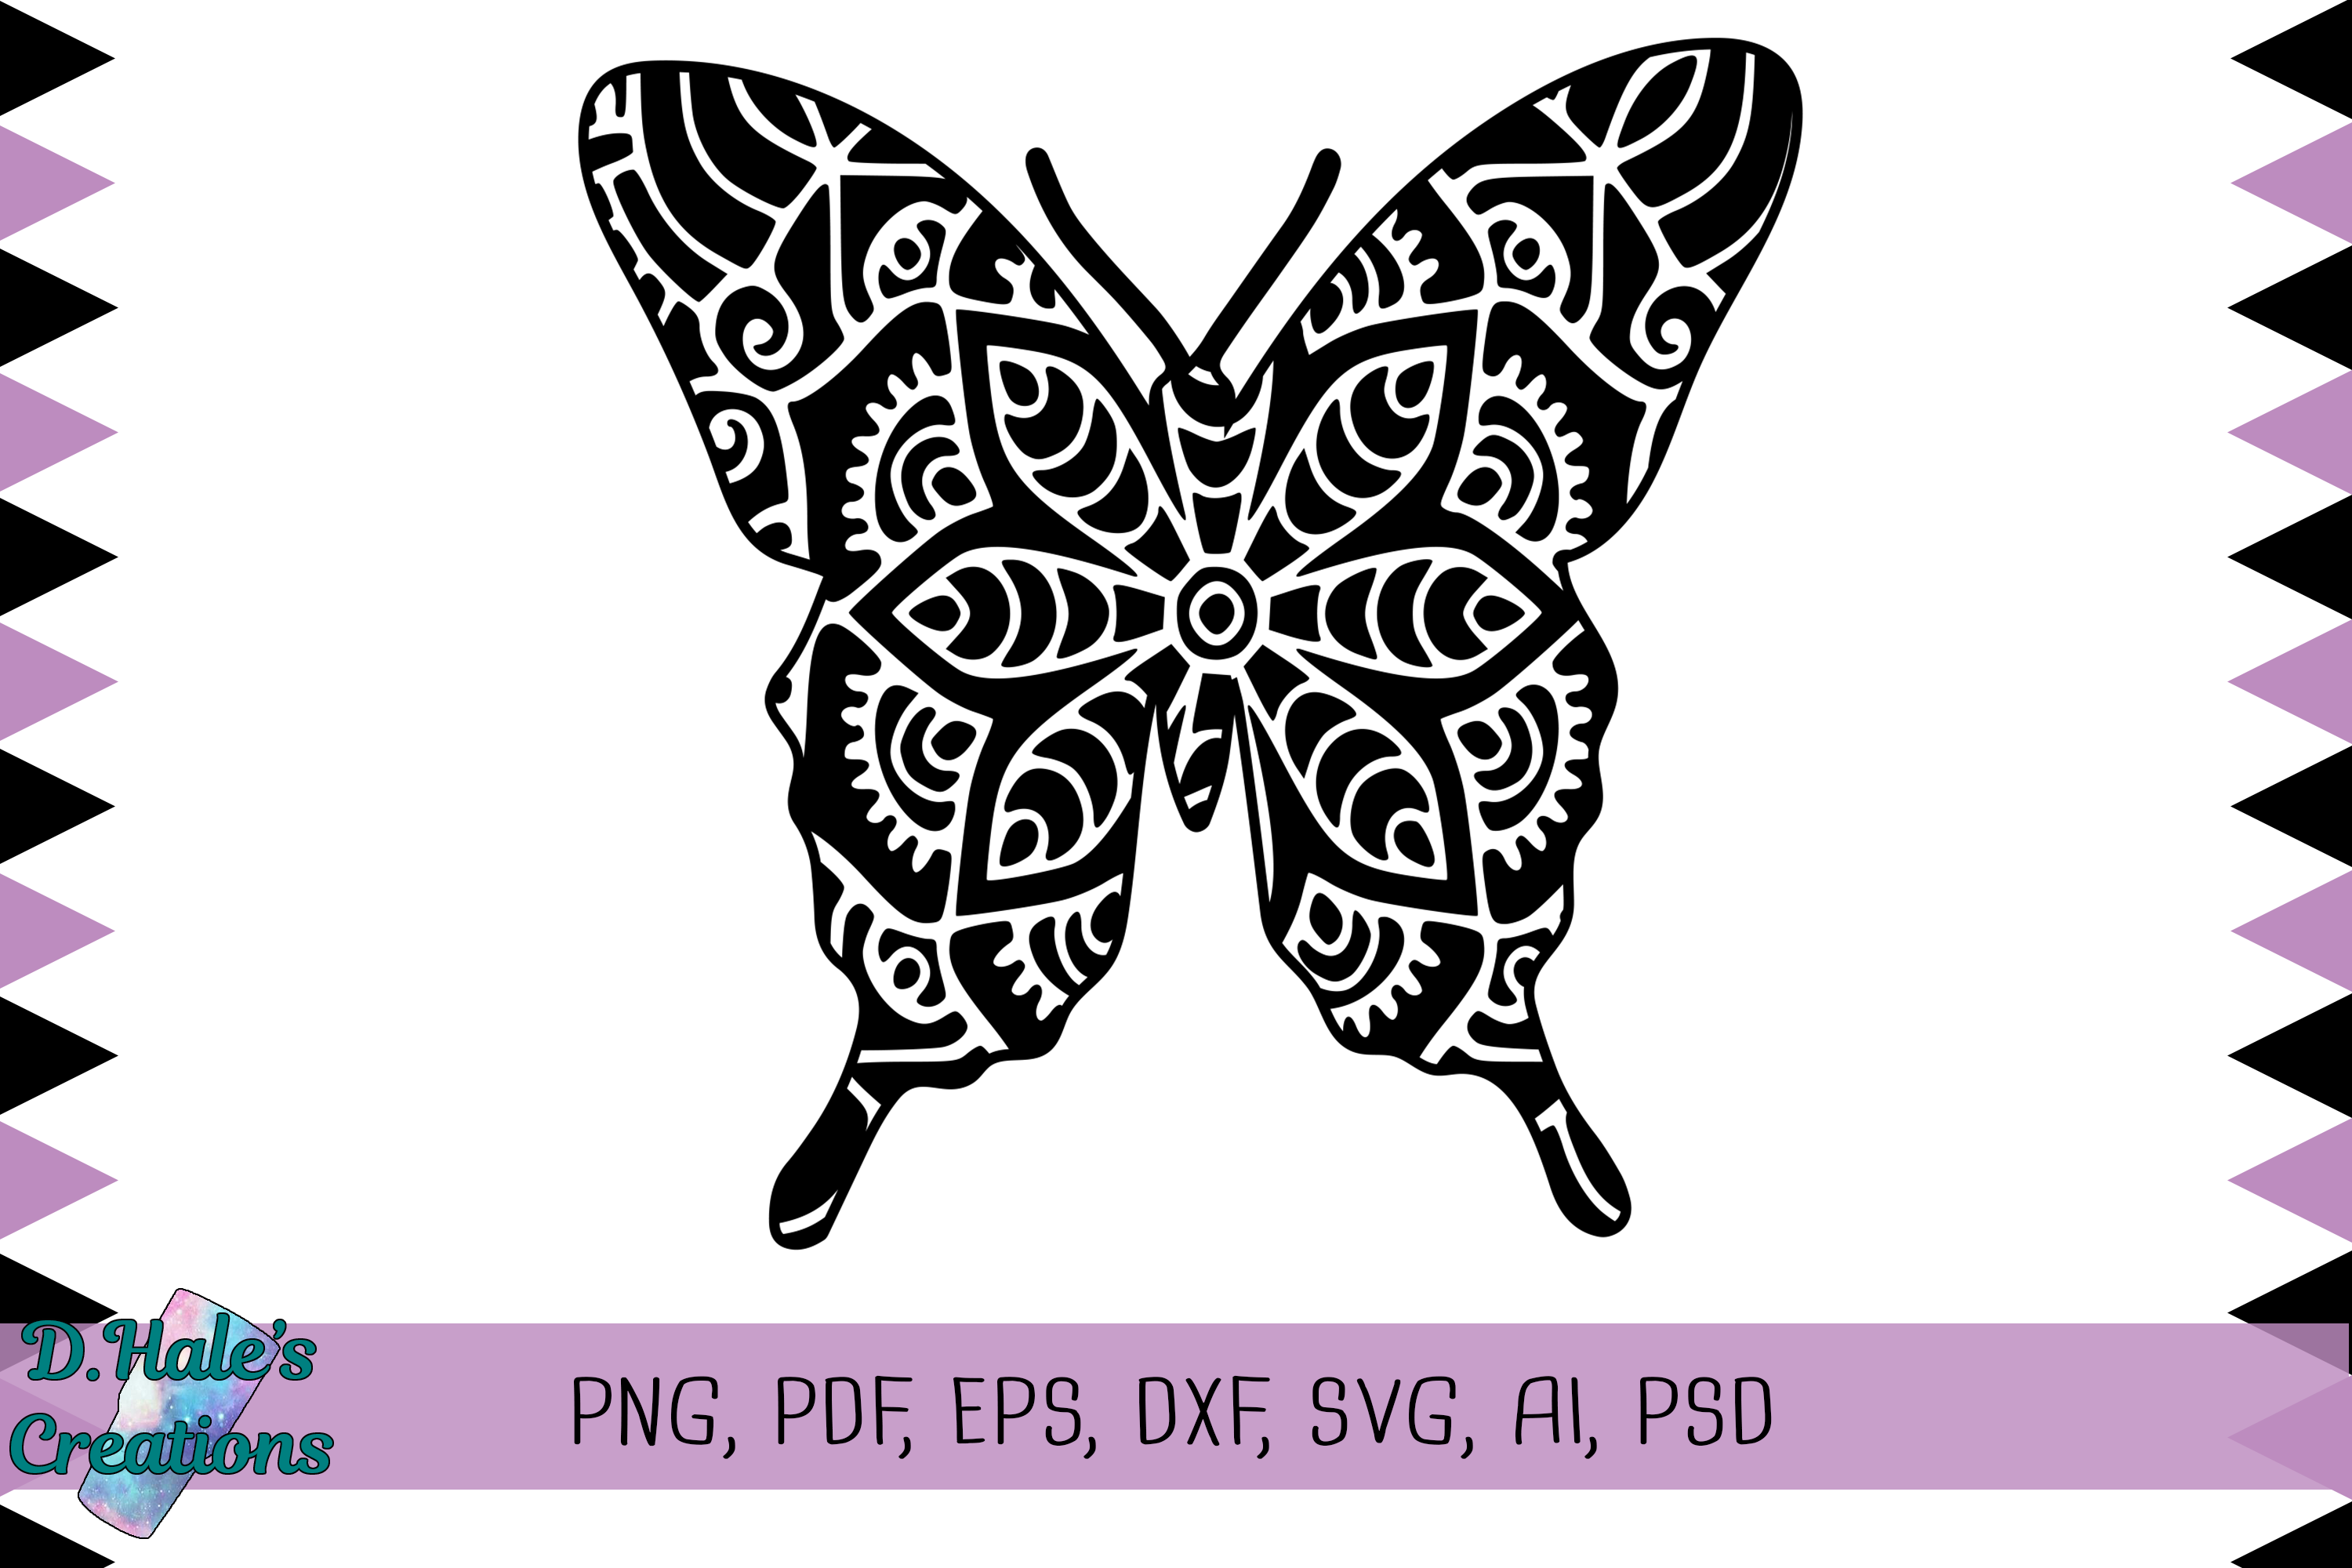 Download Free Butterfly Mandala Graphic By D Hale S Creations Creative Fabrica for Cricut Explore, Silhouette and other cutting machines.